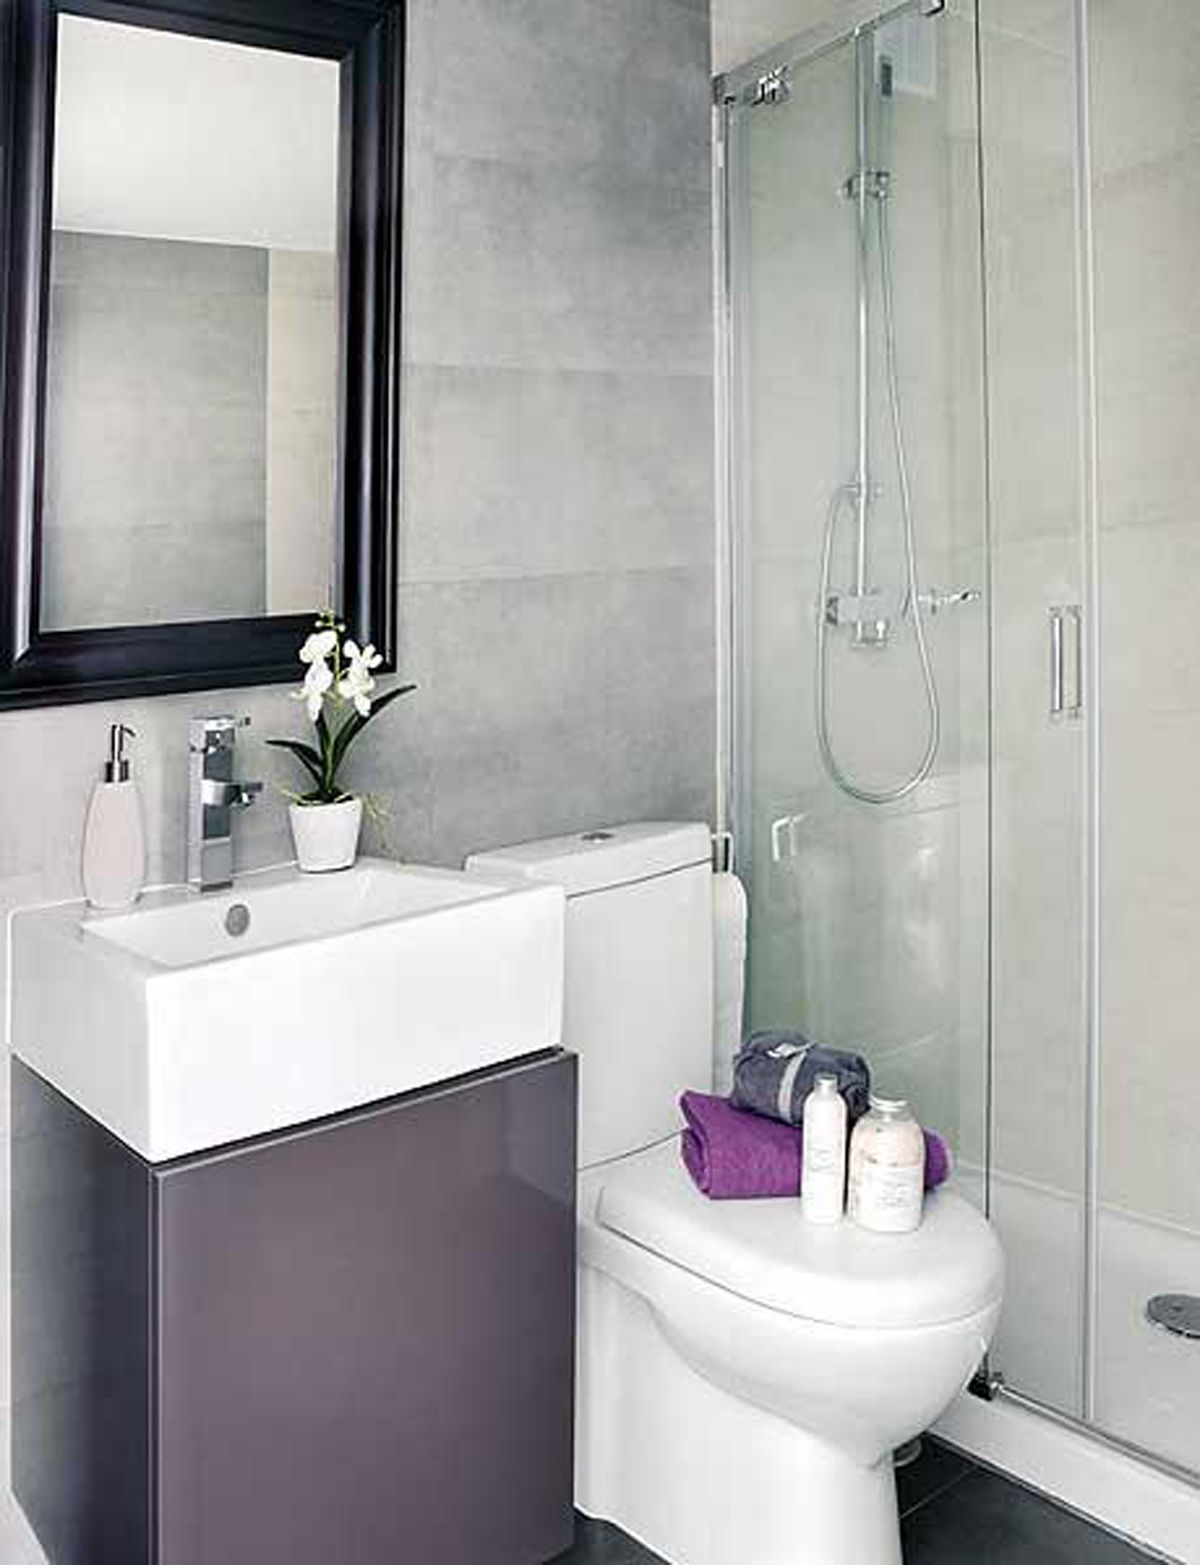 design a small bathroom intrinsic interior design applied in small apartment architecture. Interior Design Ideas. Home Design Ideas